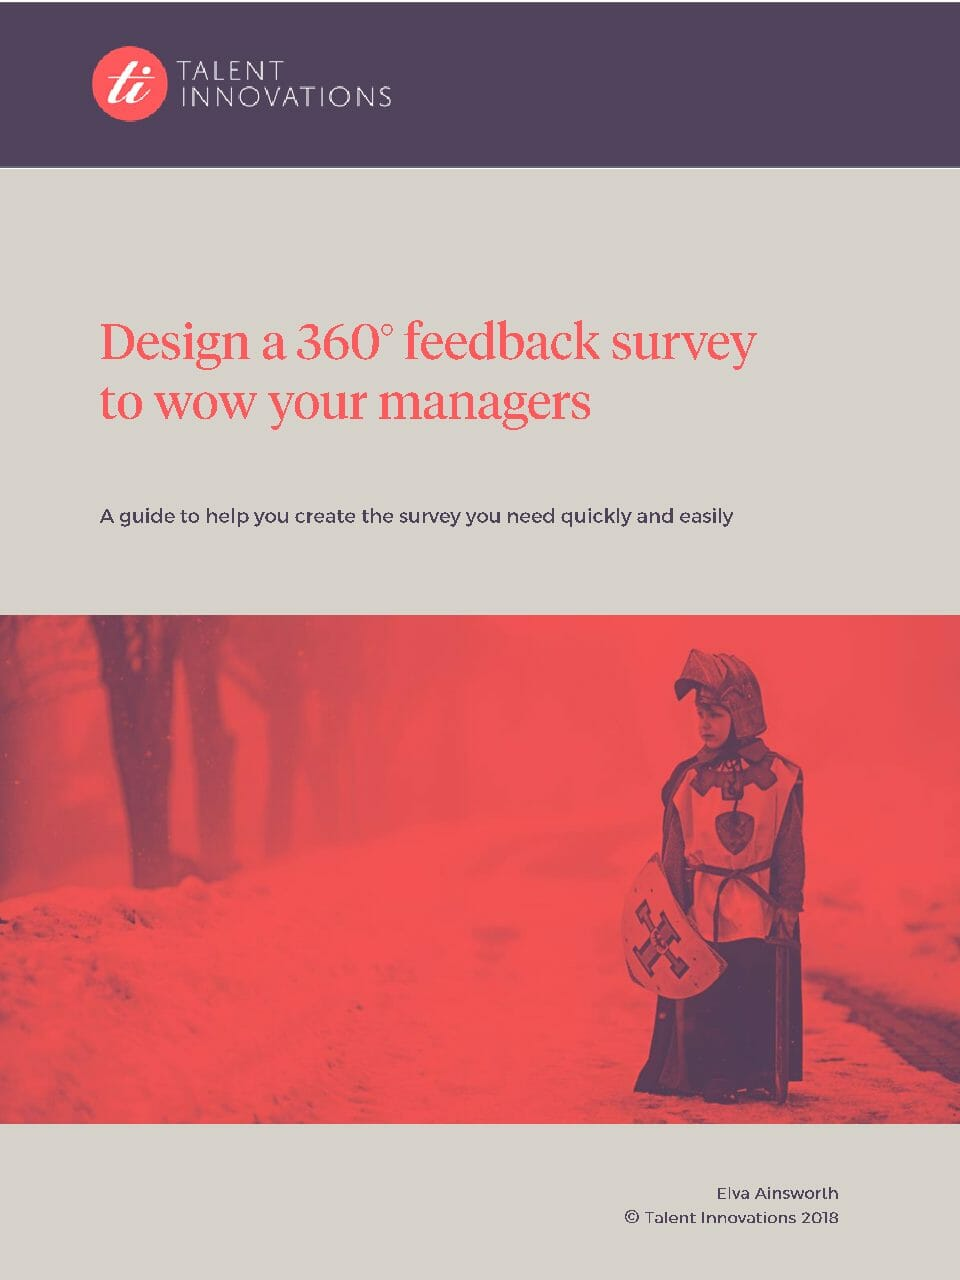 360 Guide 1 – Design a 360 feedback survey to wow your managers